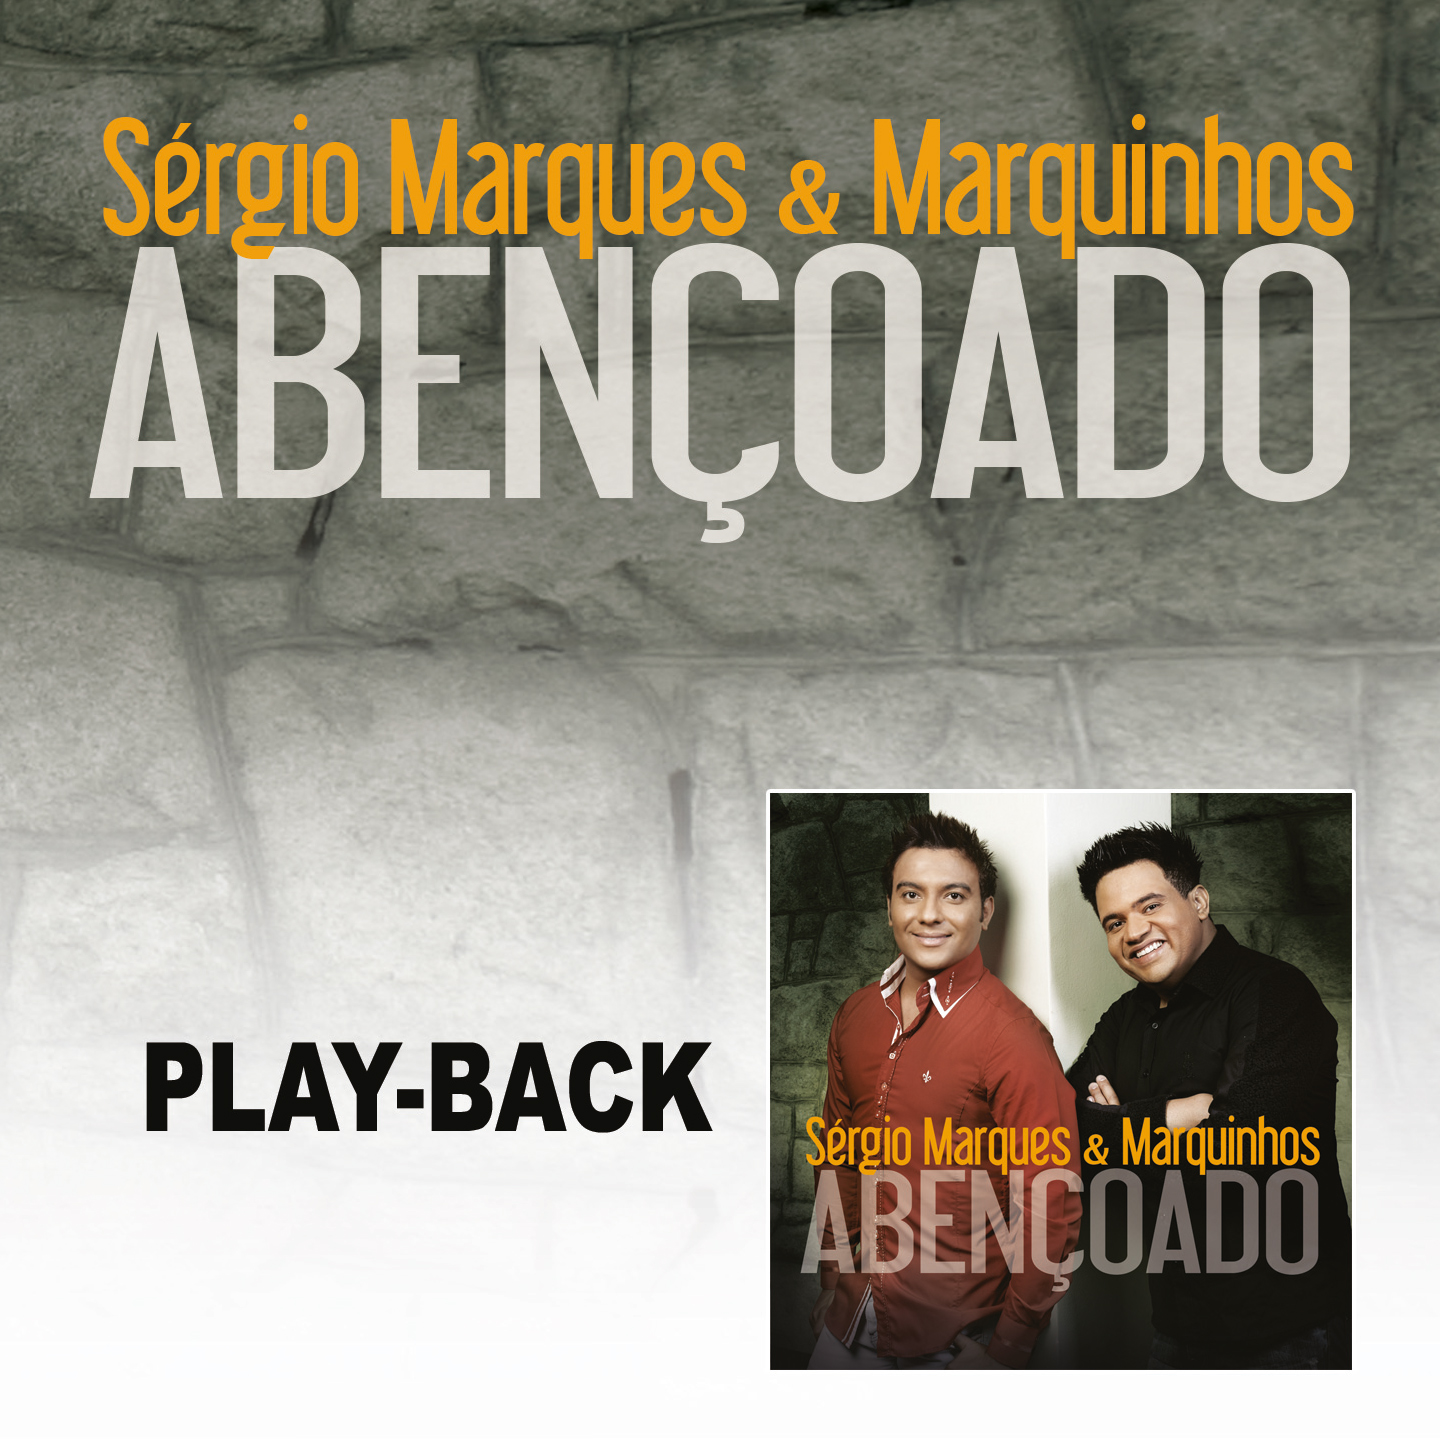 Cd Vitrine Sergio Marques E Marquinhos Abençoado Play Back Em Cd